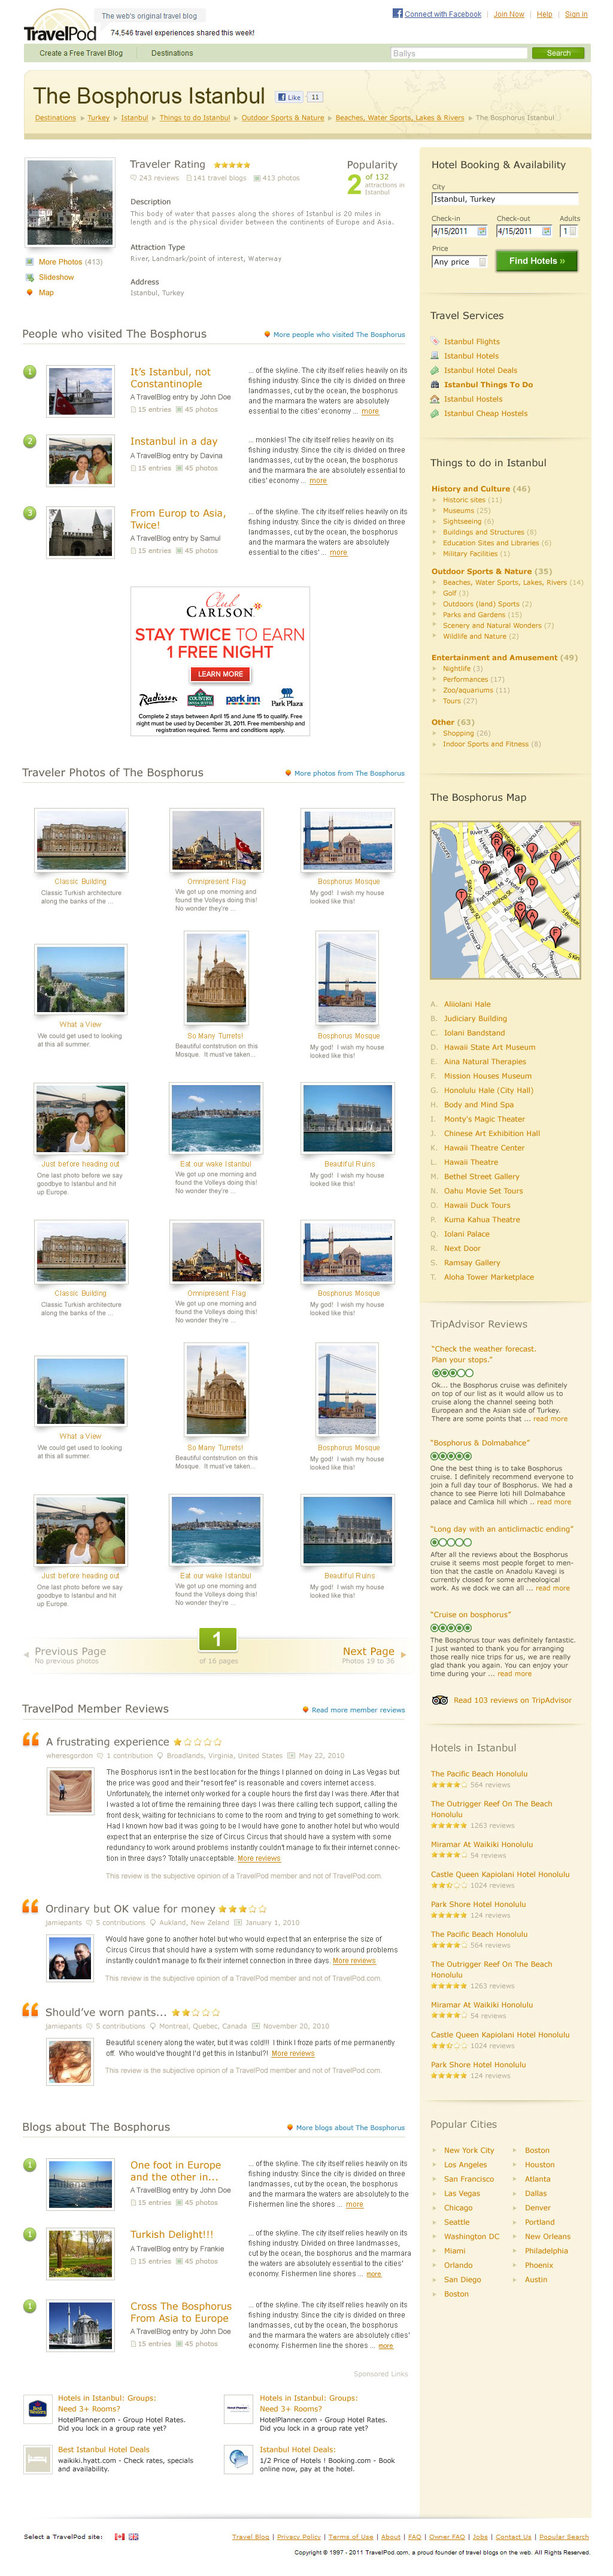 TravelPod Attractions